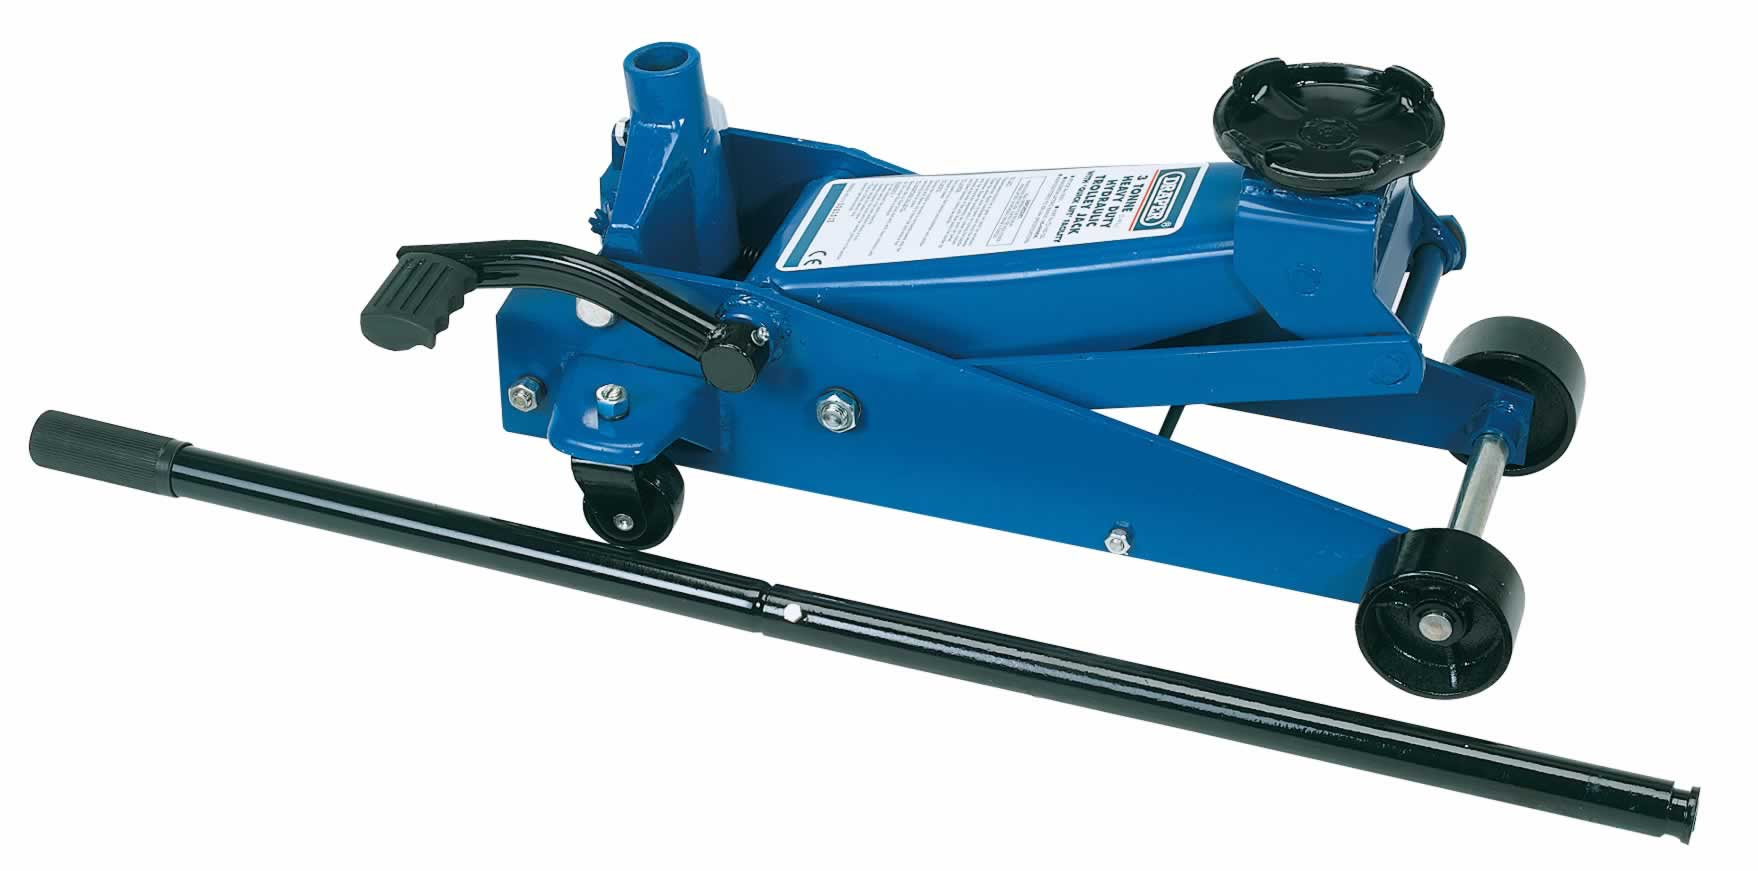 3 TONNE HEAVY DUTY GARAGE TROLLEY JACK WITH 'QUICK LIFT' FACILITY